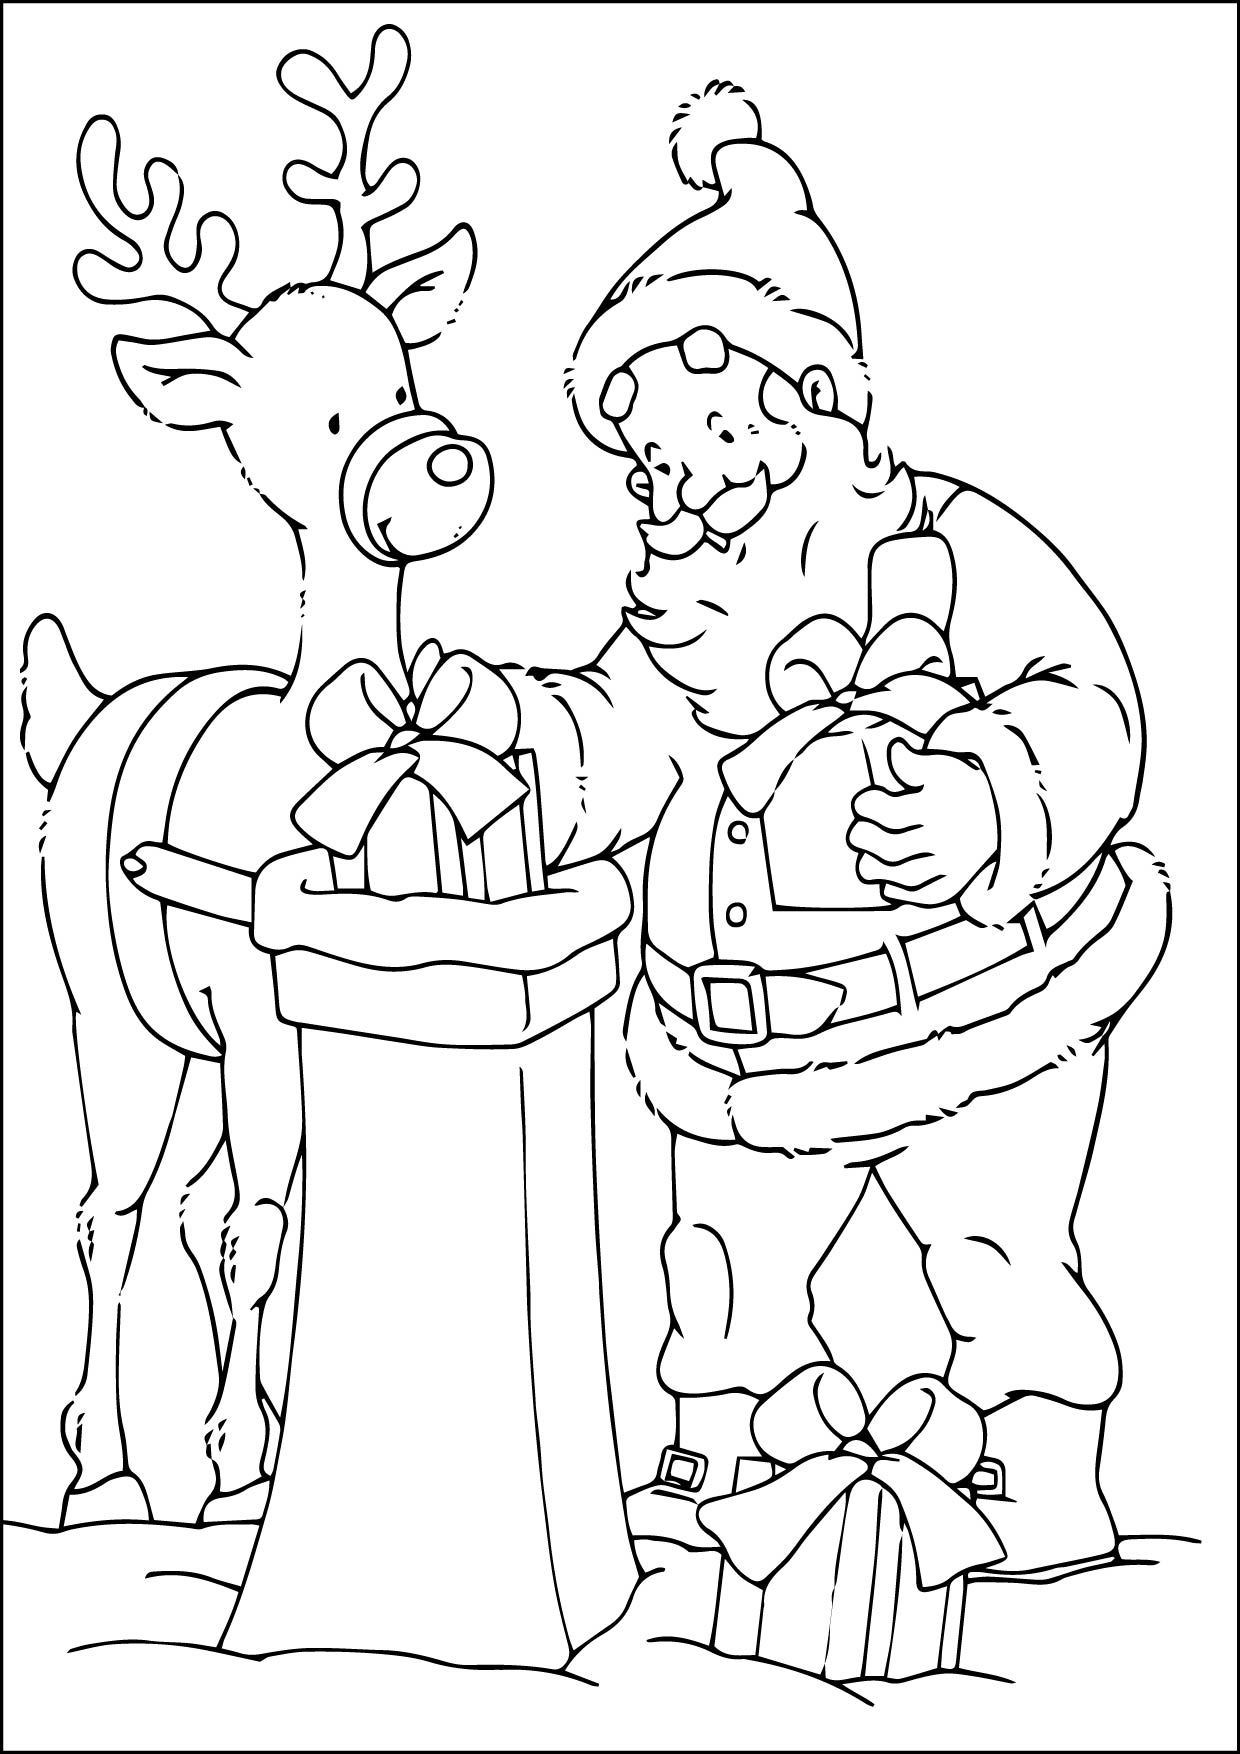 Pin By M Coloring Page On Mcoloring